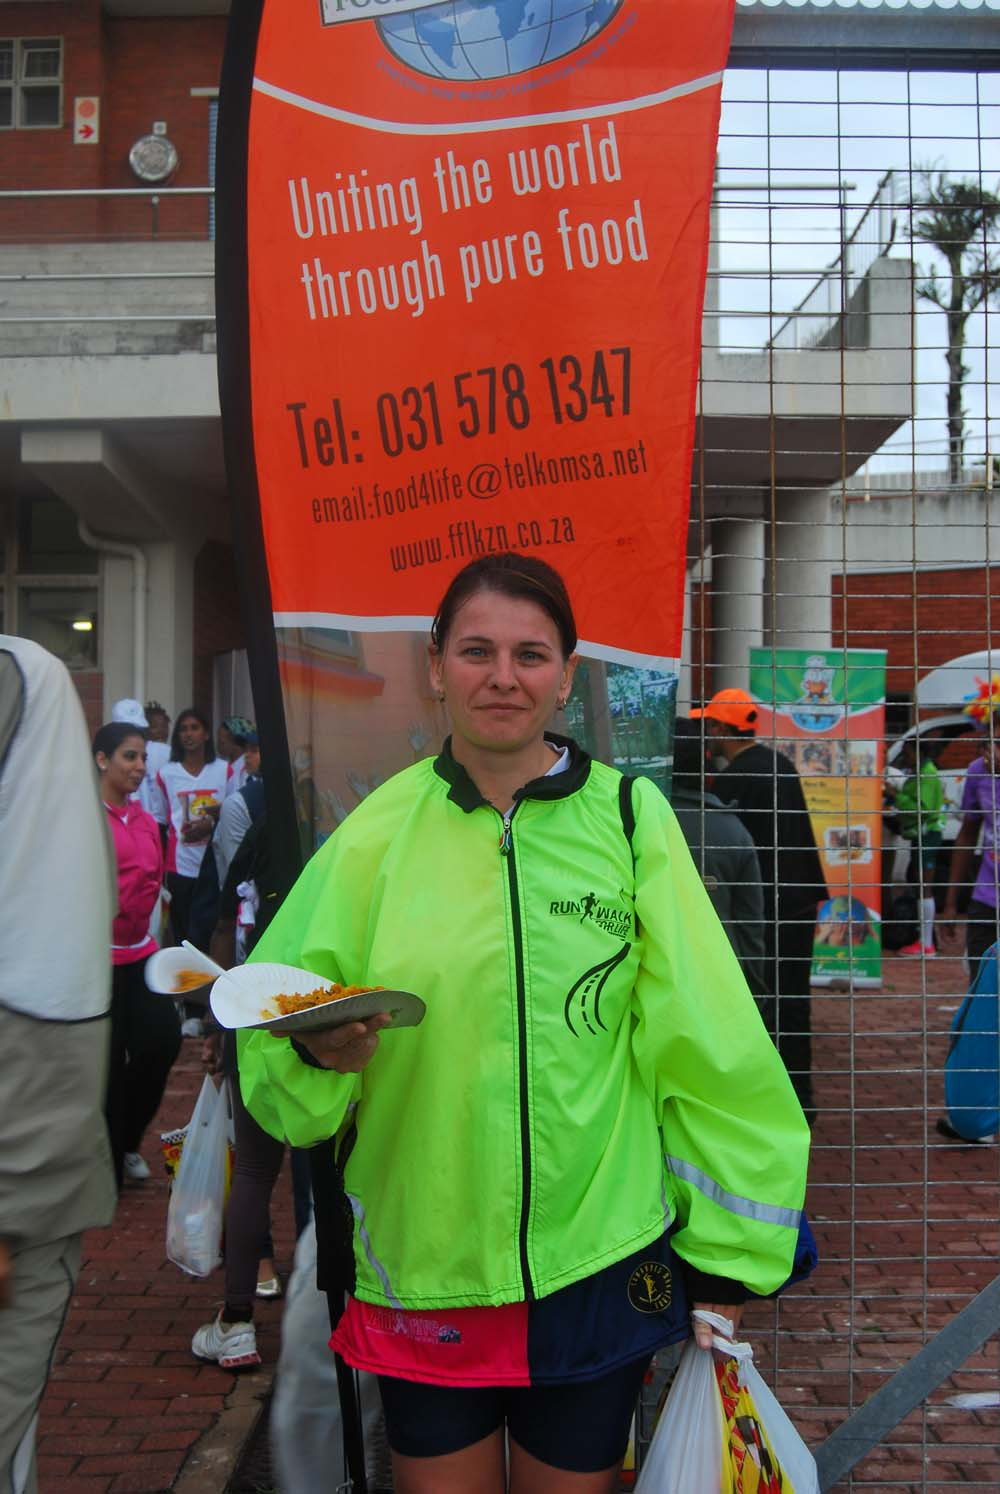 Pleasant Giselle Hall, a secretary from Amanzimtoti, has been participating in the race for 3 years liked the good vibe and food